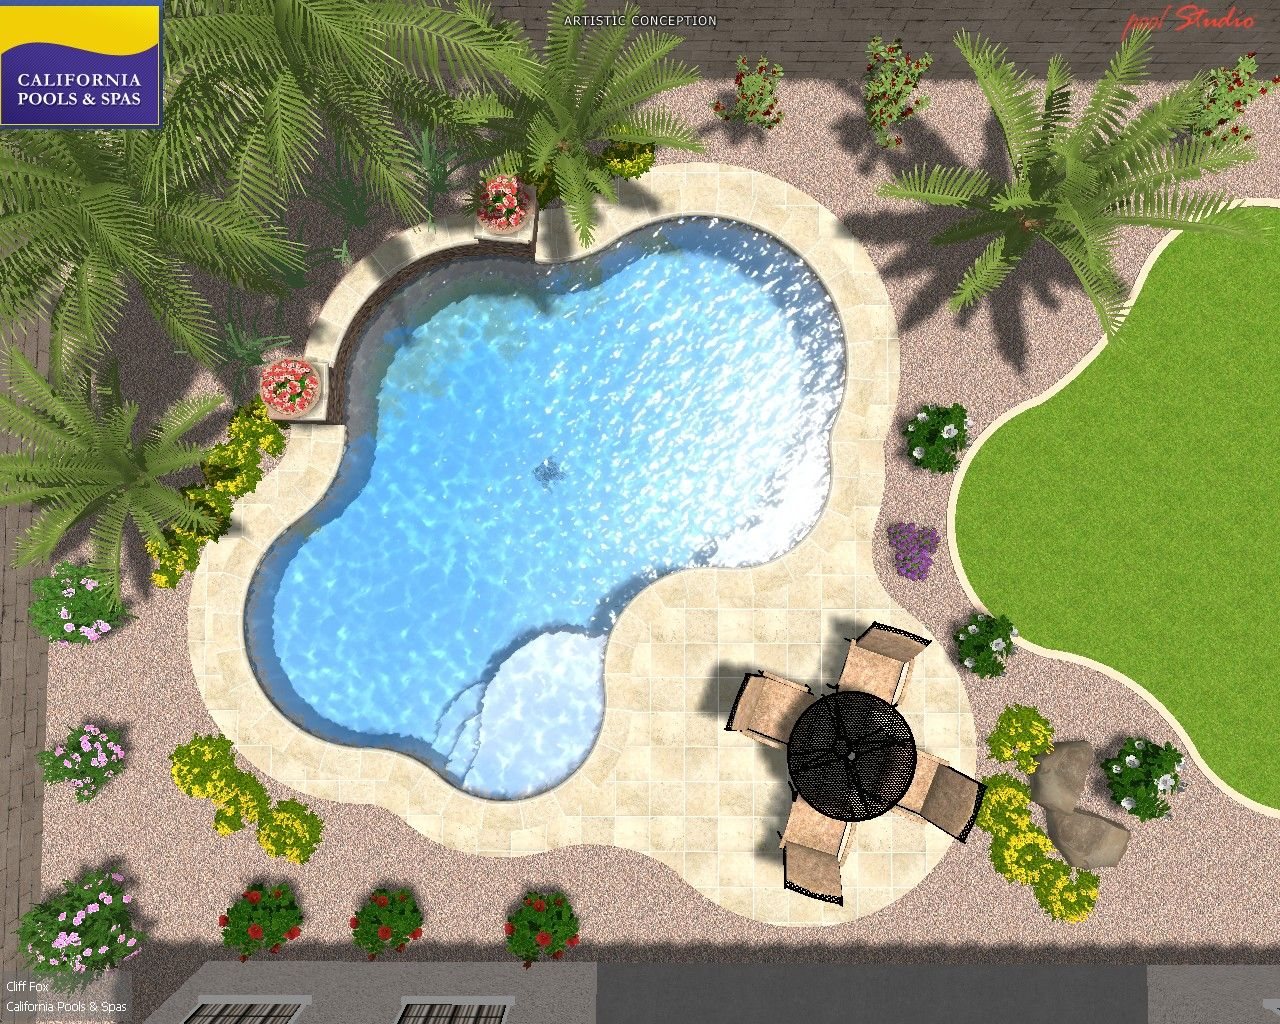 Pool Designs California Pools Blog Pool Designs Backyard Pool Landscaping Children Swimming Pool